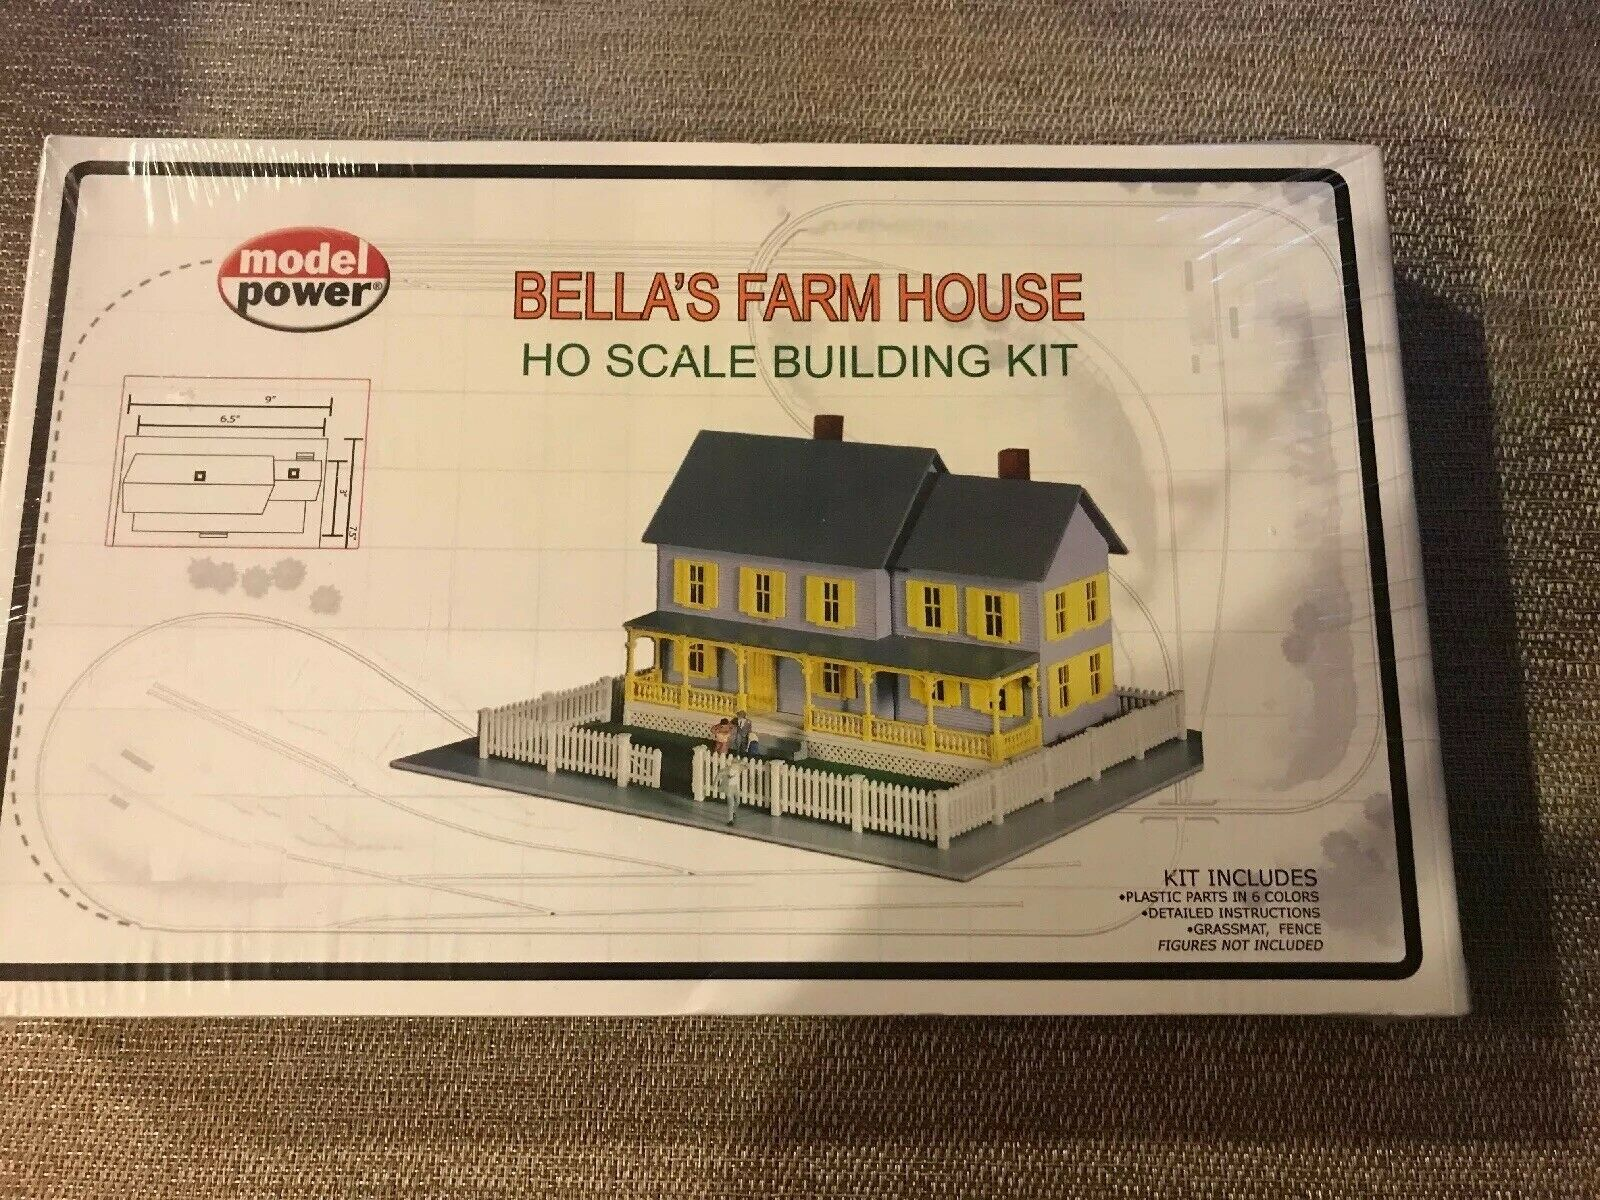 Model Power Bella's Farm House HO Scale